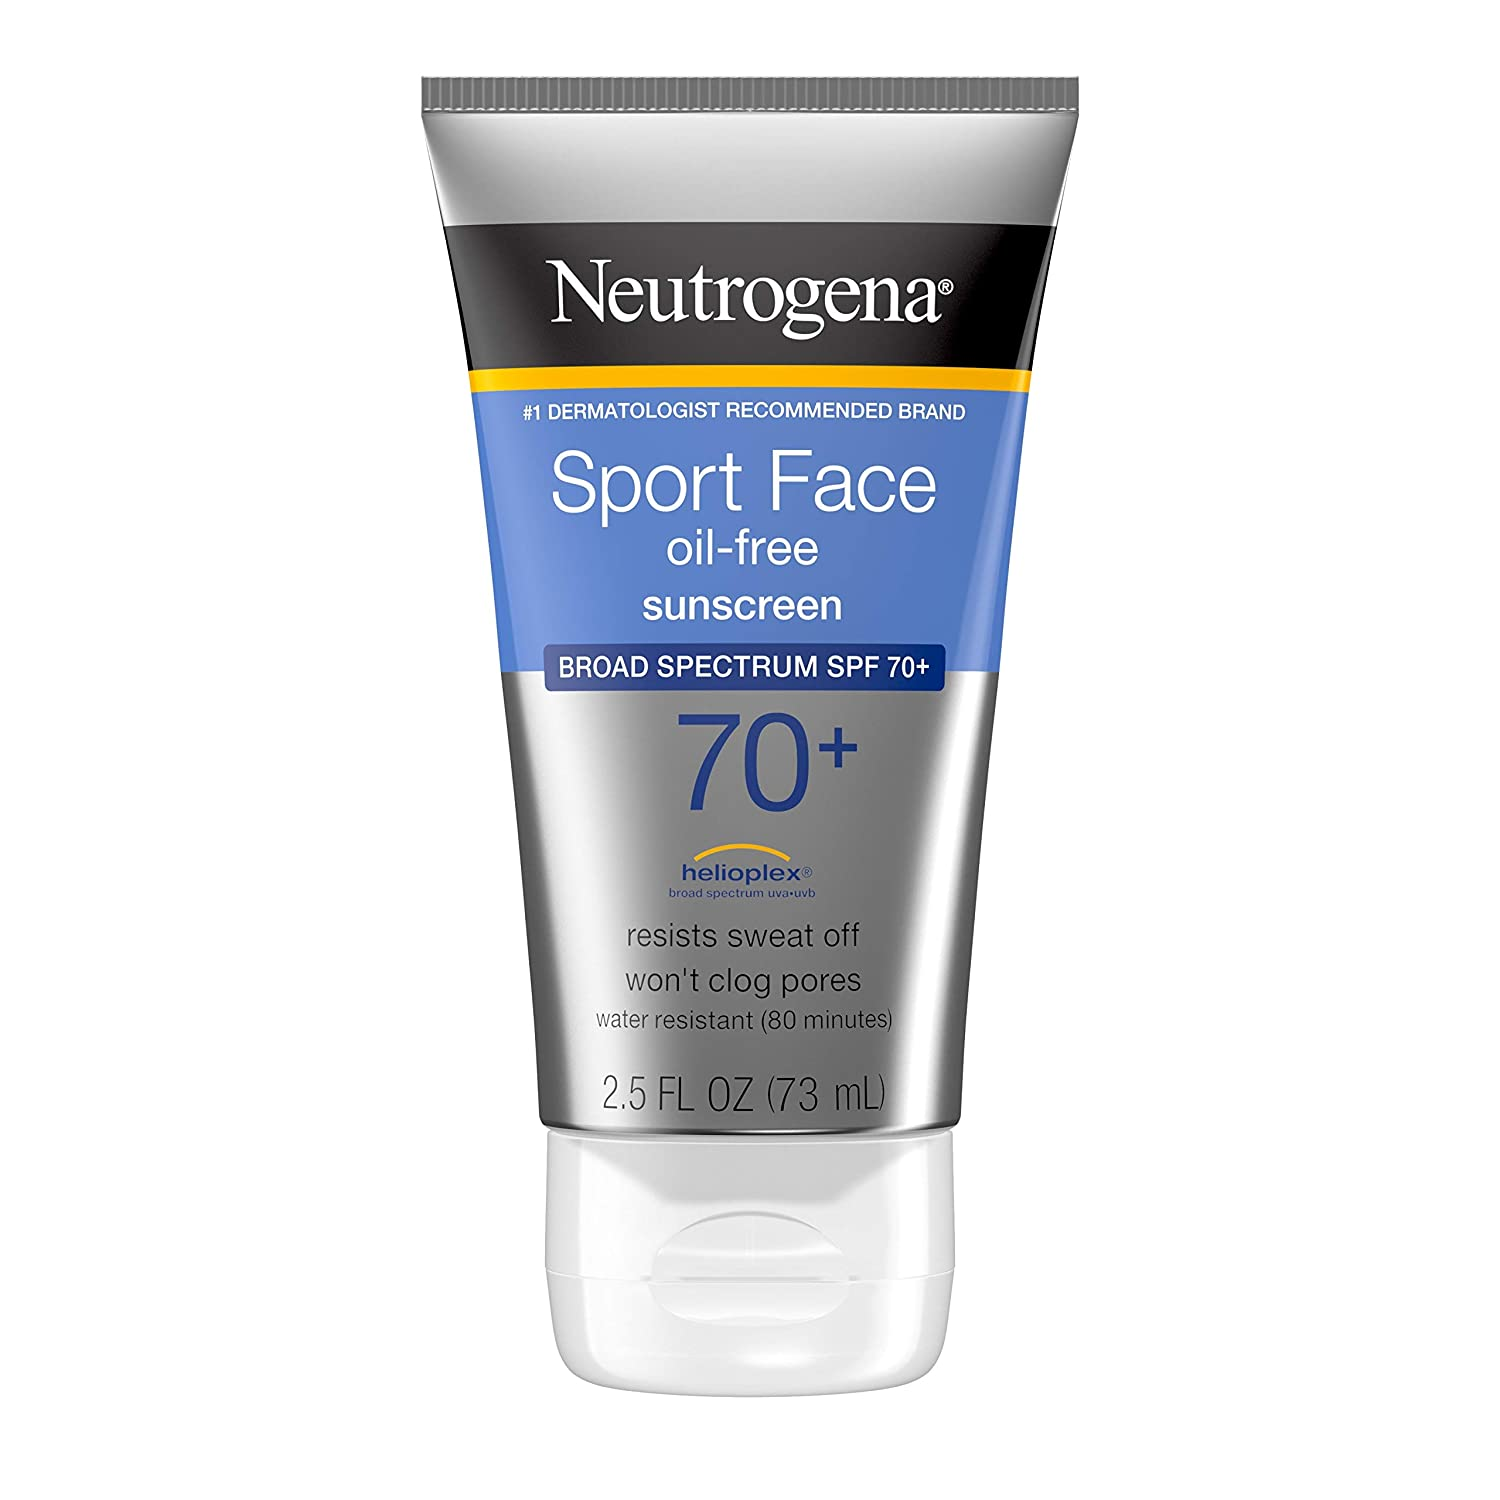 Neutrogena Sport Face Sunscreen, Oil-Free Sunscreen Lotion with Broad Spectrum UVA/UVB SPF 70+ Protection, Sweat-Resistant & Water-Resistant Active Sport Sunscreen, 2.5 fl. oz: Beauty